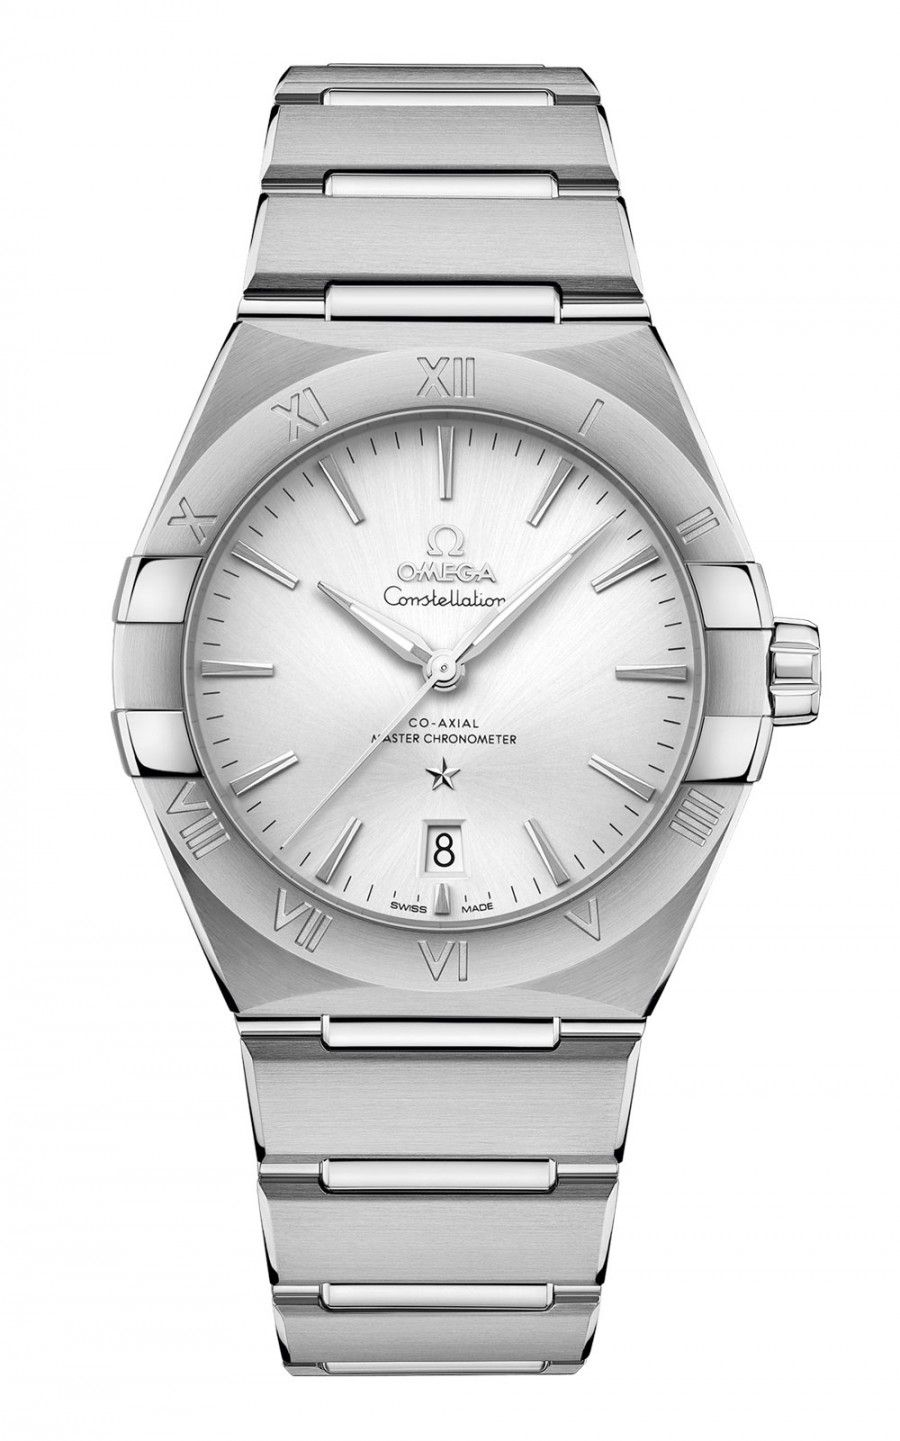 Hình Đồng hồ Omega Constellation Co‑Axial Master Chronometer, 39mm 131.10.39.20.02.001